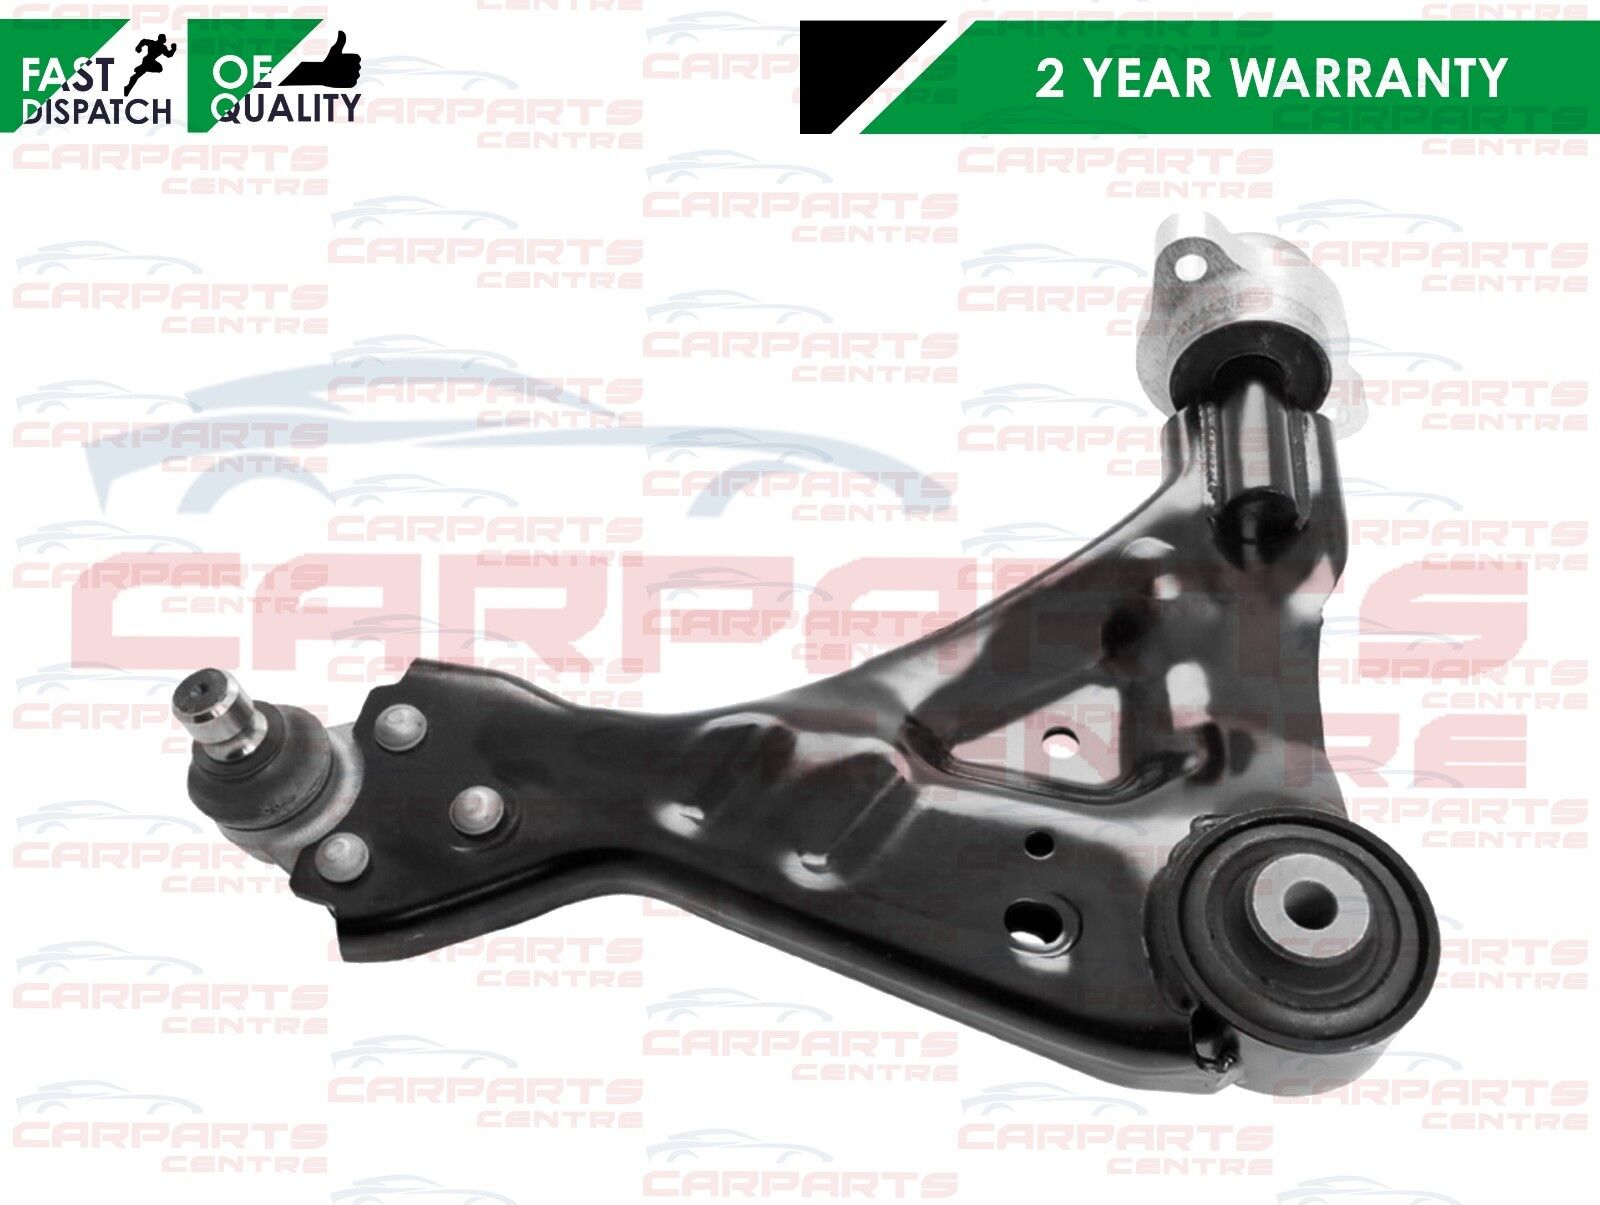 FOR MERCEDES VITO VIANO W639 FRONT LOWER LEFT WISHBONE CONTROL ARM BUSH 10-14 LH